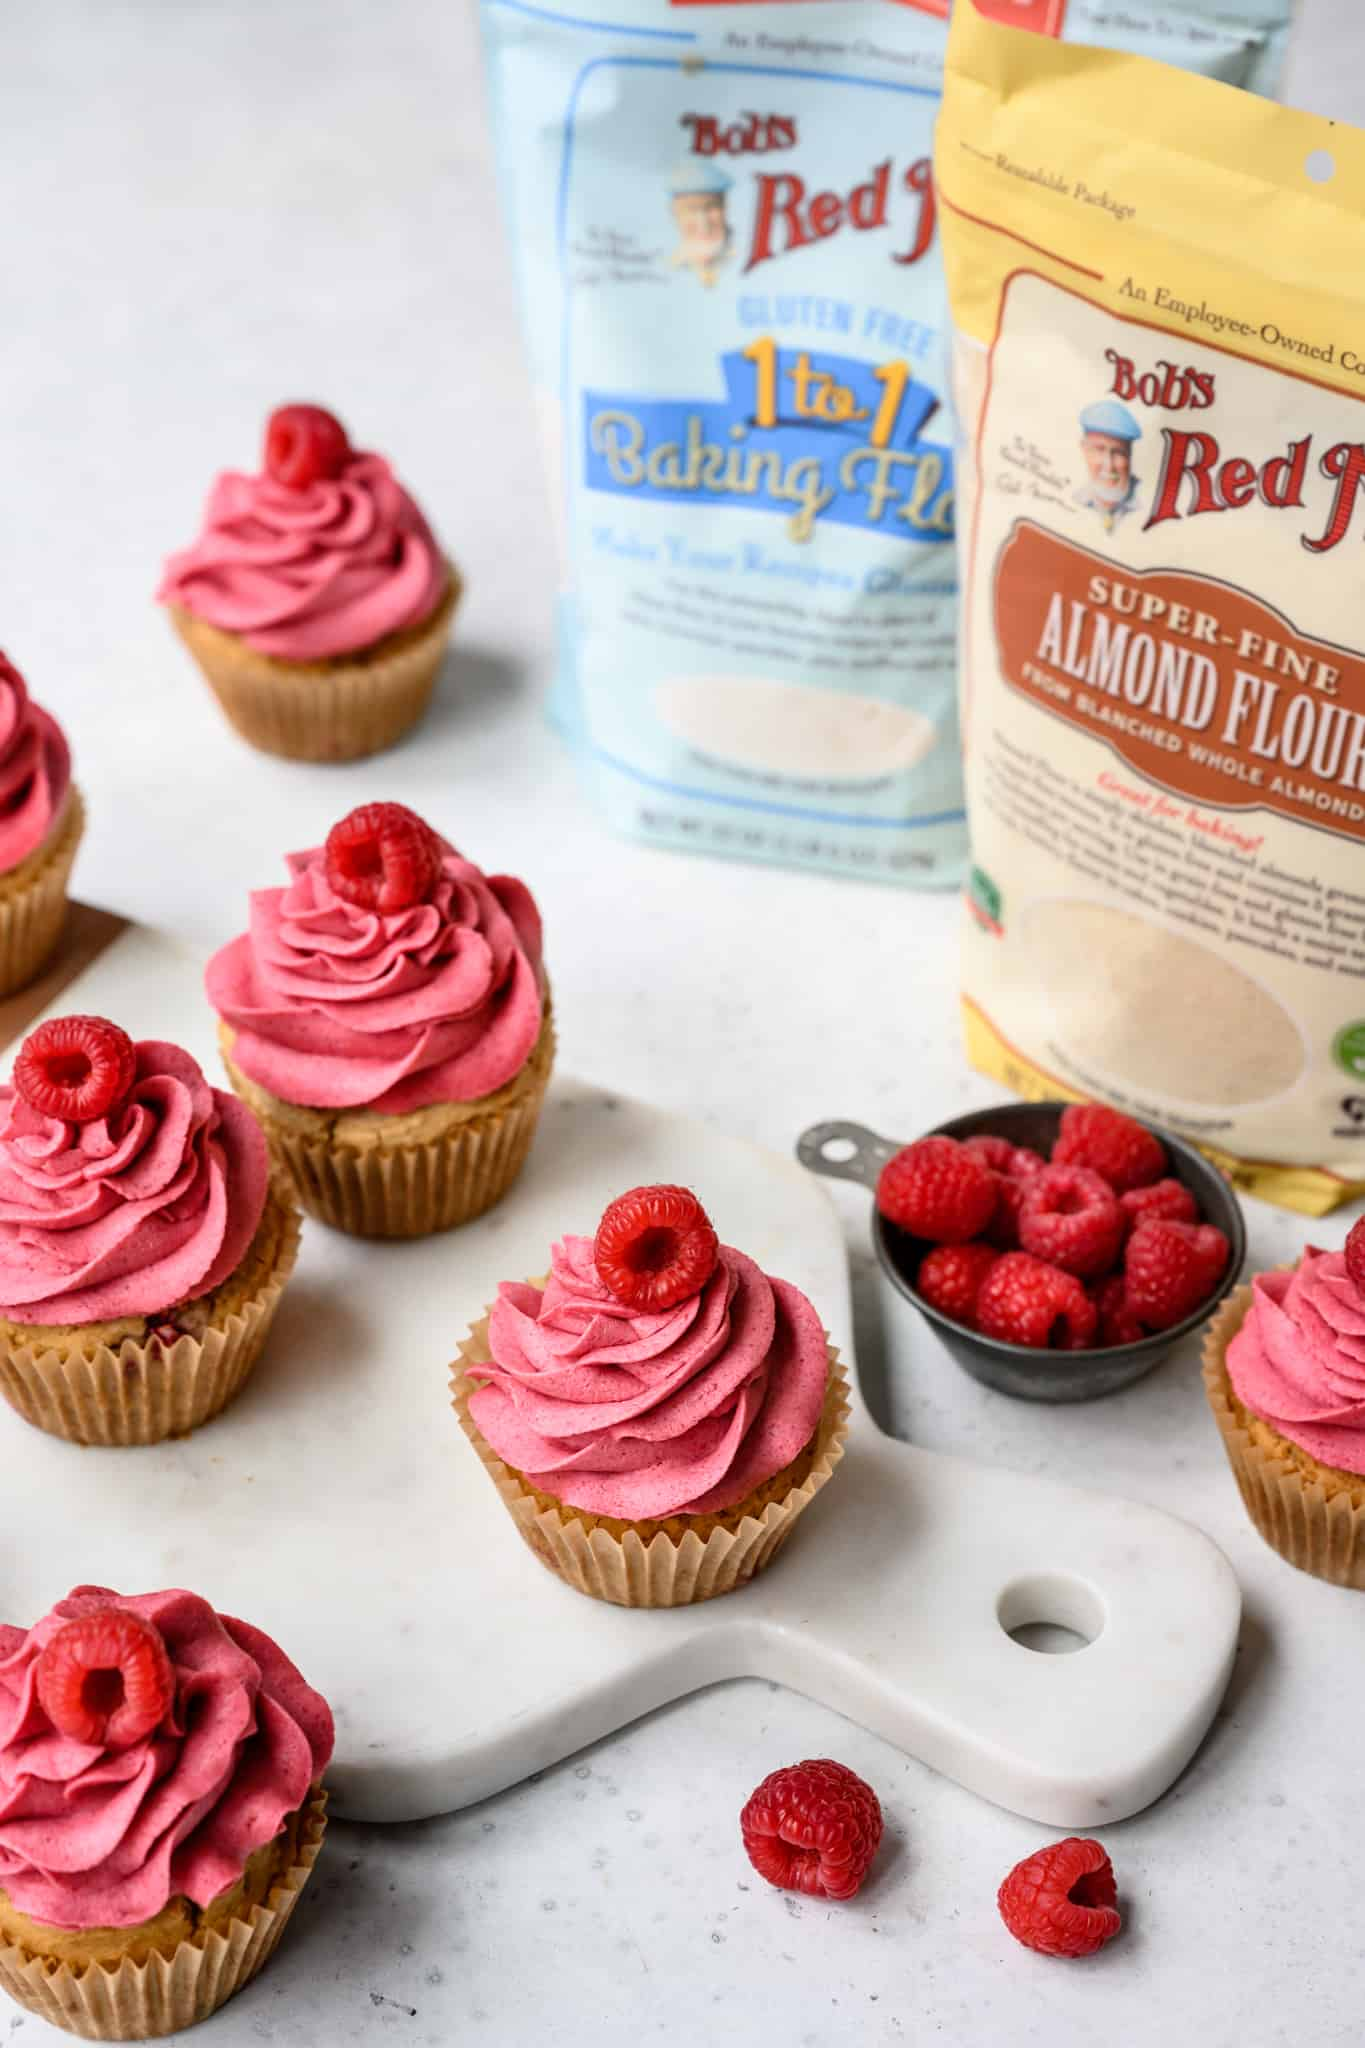 side view of raspberry almond cupcakes on white background with Bob's Red Mill products